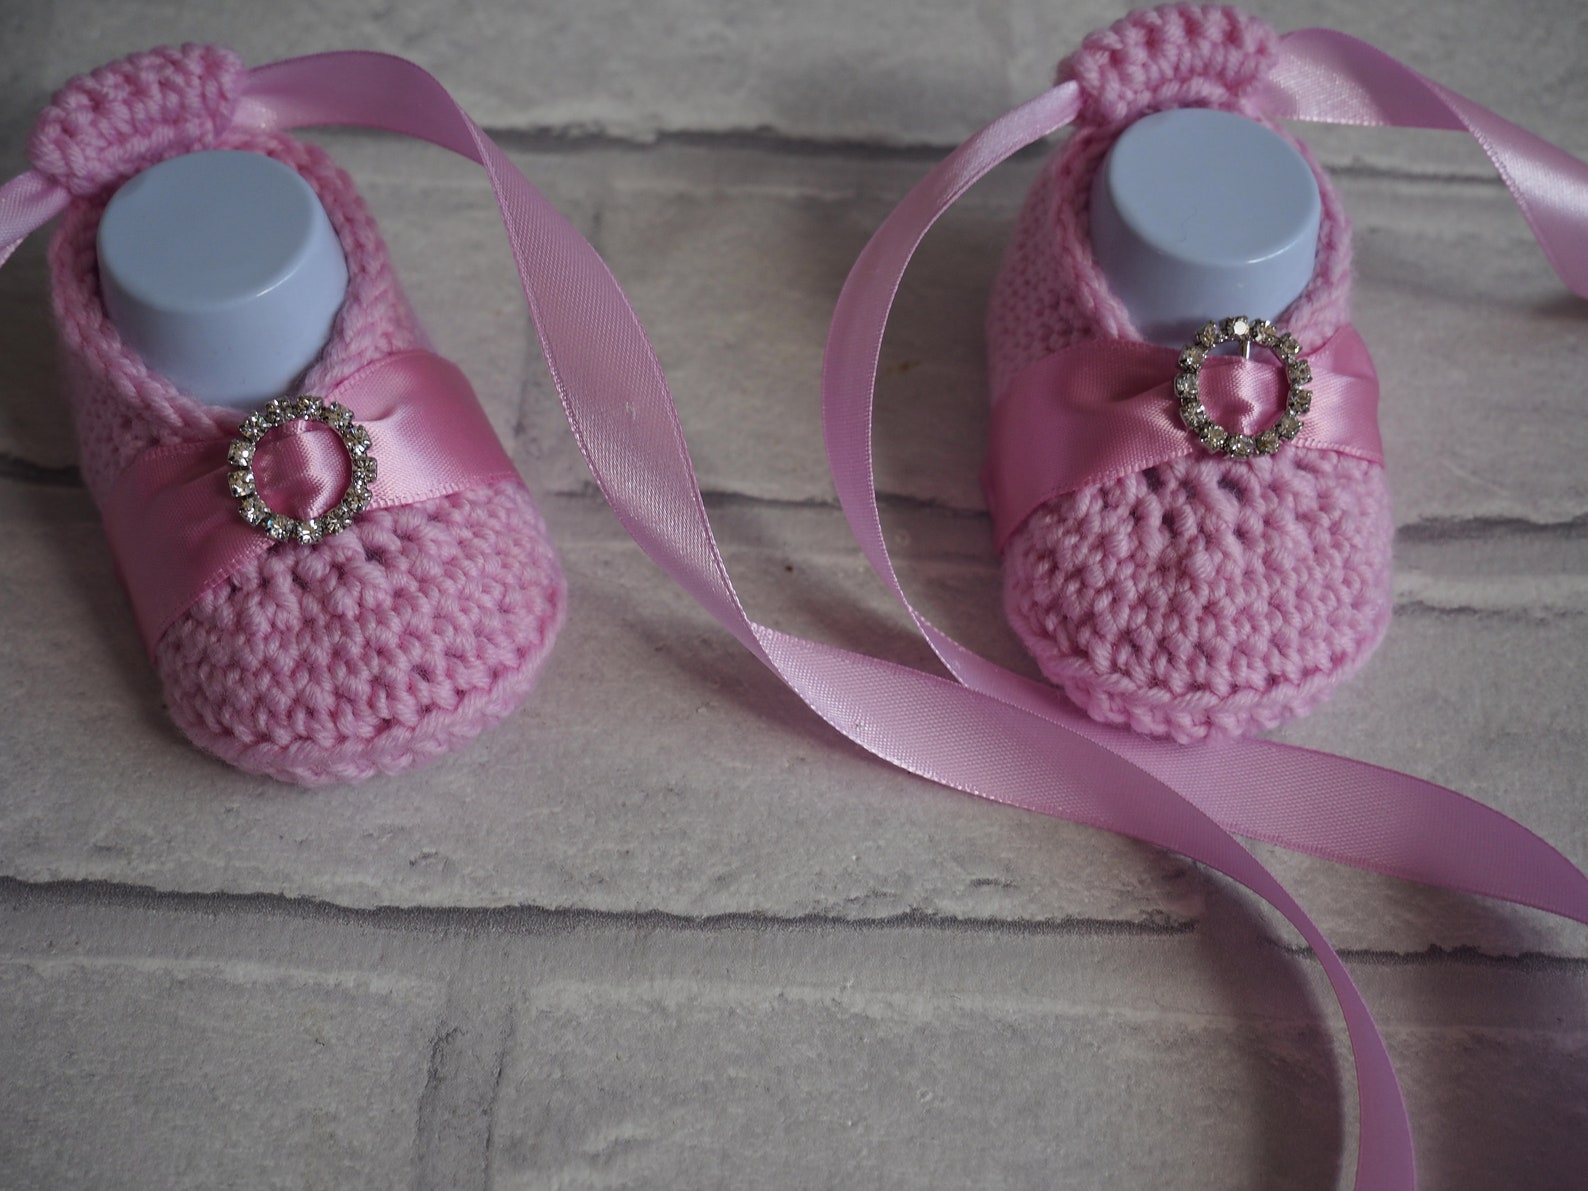 crochet wedding booties, baby christening shoes, baby girl booties, merino wool booties, ballerina booties, ballet slippers, sho